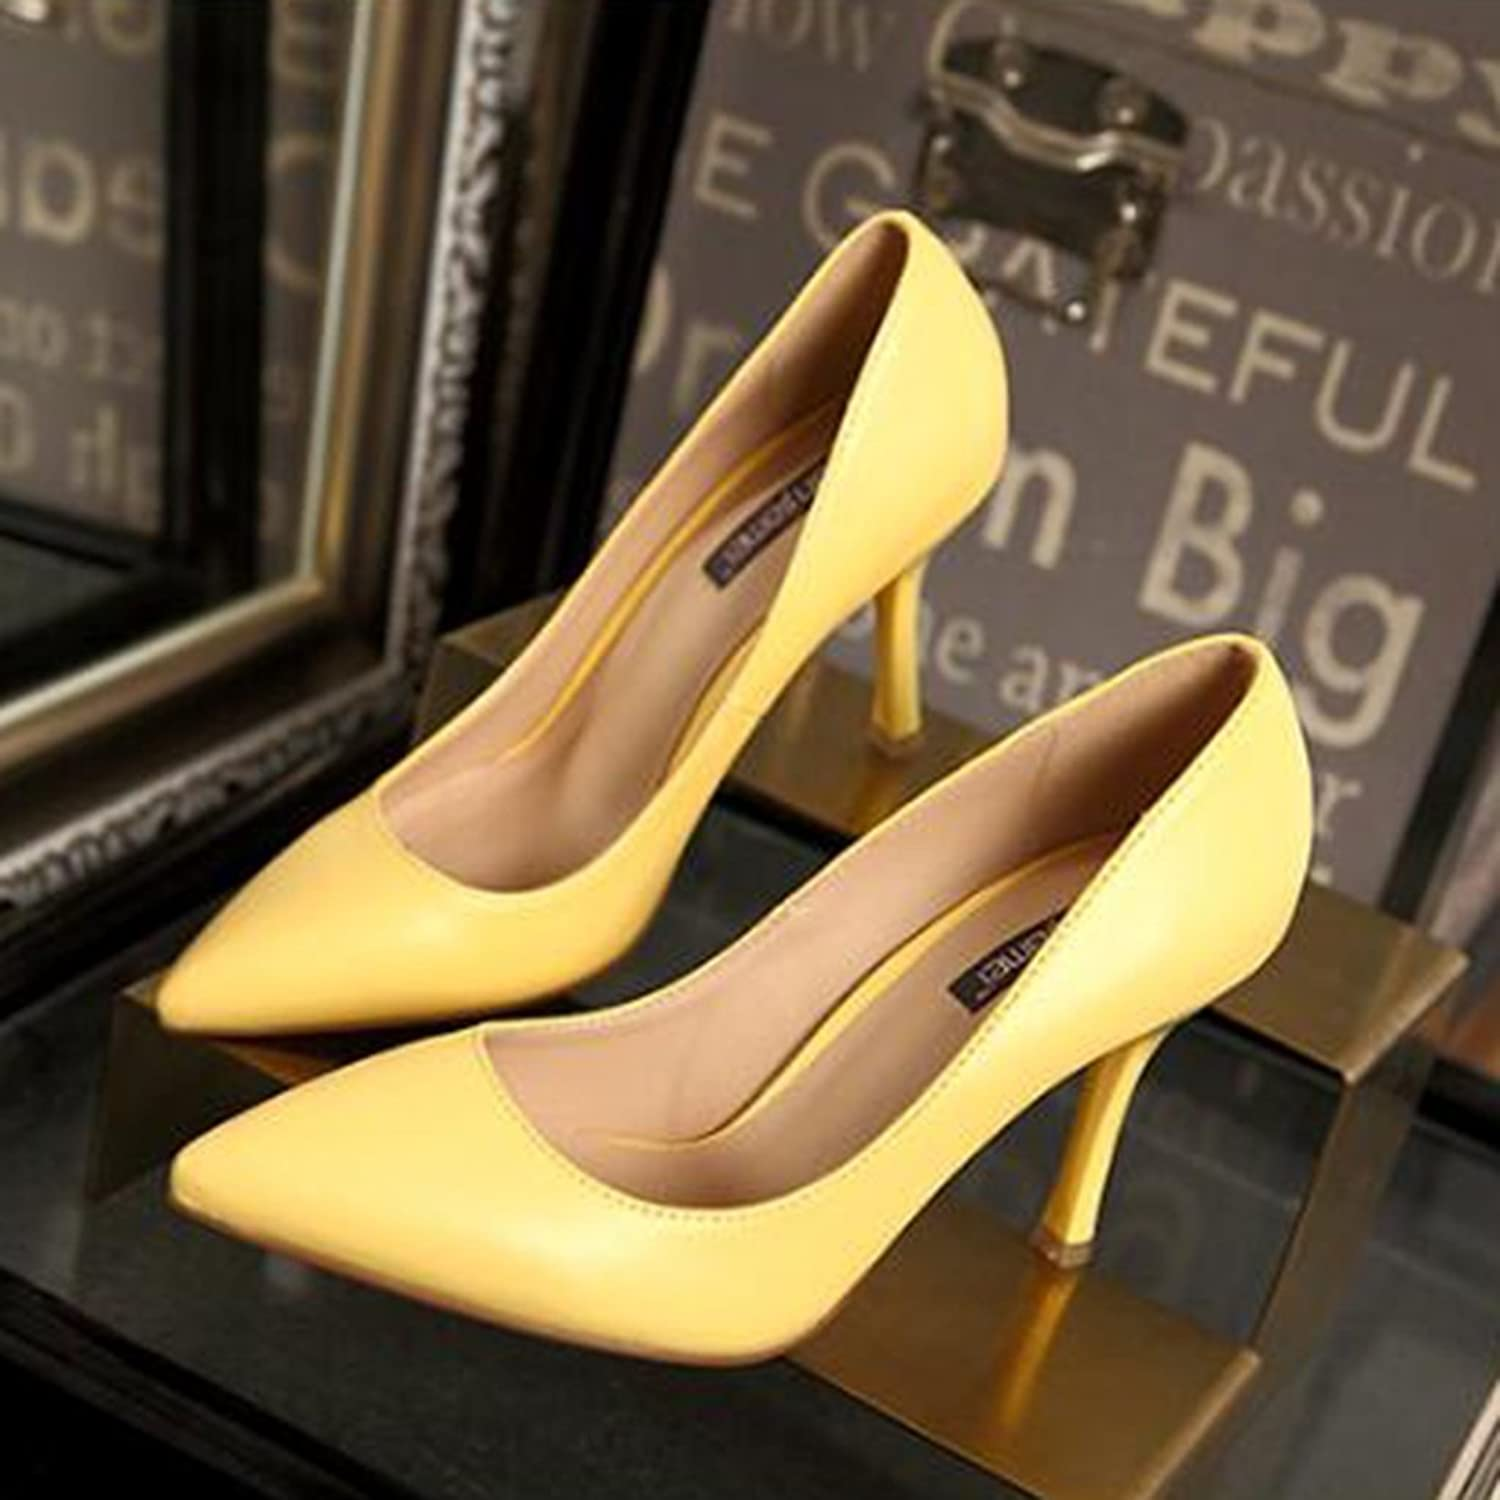 Female Summer Tipped high Heels high Help Sexy fine with Single shoes Work shoes Elegant Leather high Heels (color   Yellow, Size   37)